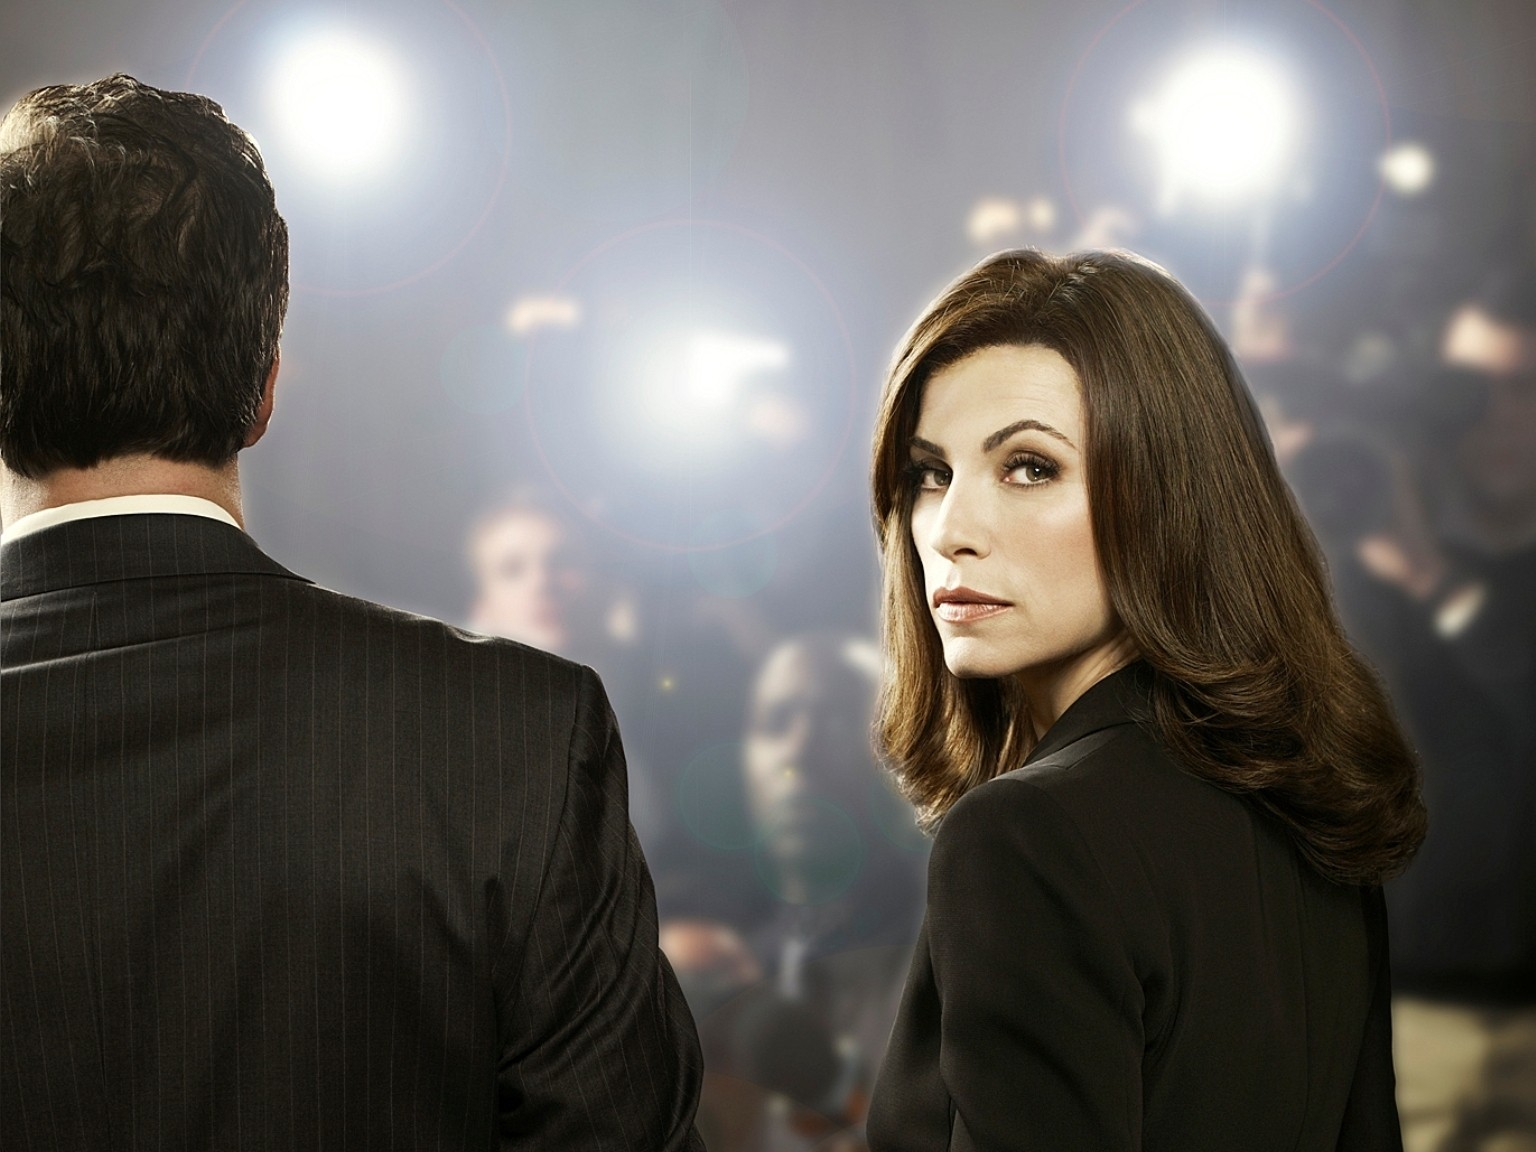 alicia_florrick_the_good_wife_10_powerful_women_from_movies_and_tv_series_fabulous-muses4